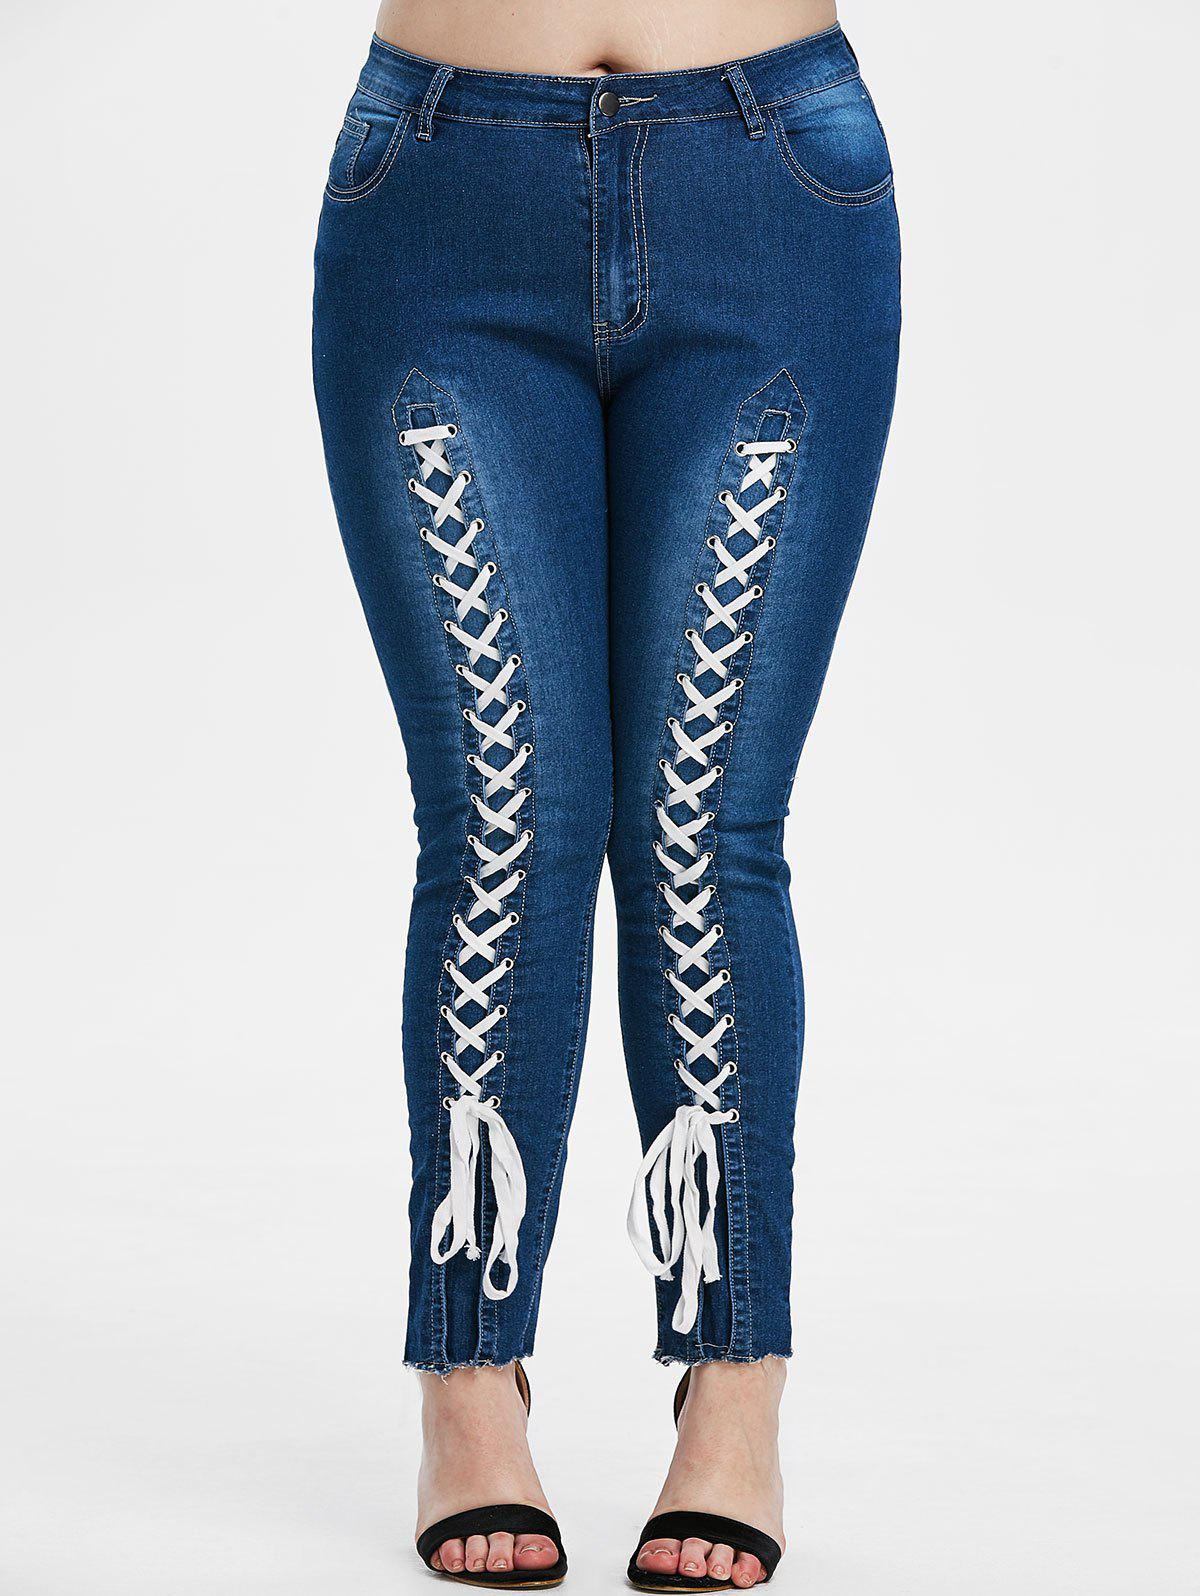 Plus Size High Waisted Lace-up Front Tapered Jeans - DENIM BLUE 5X